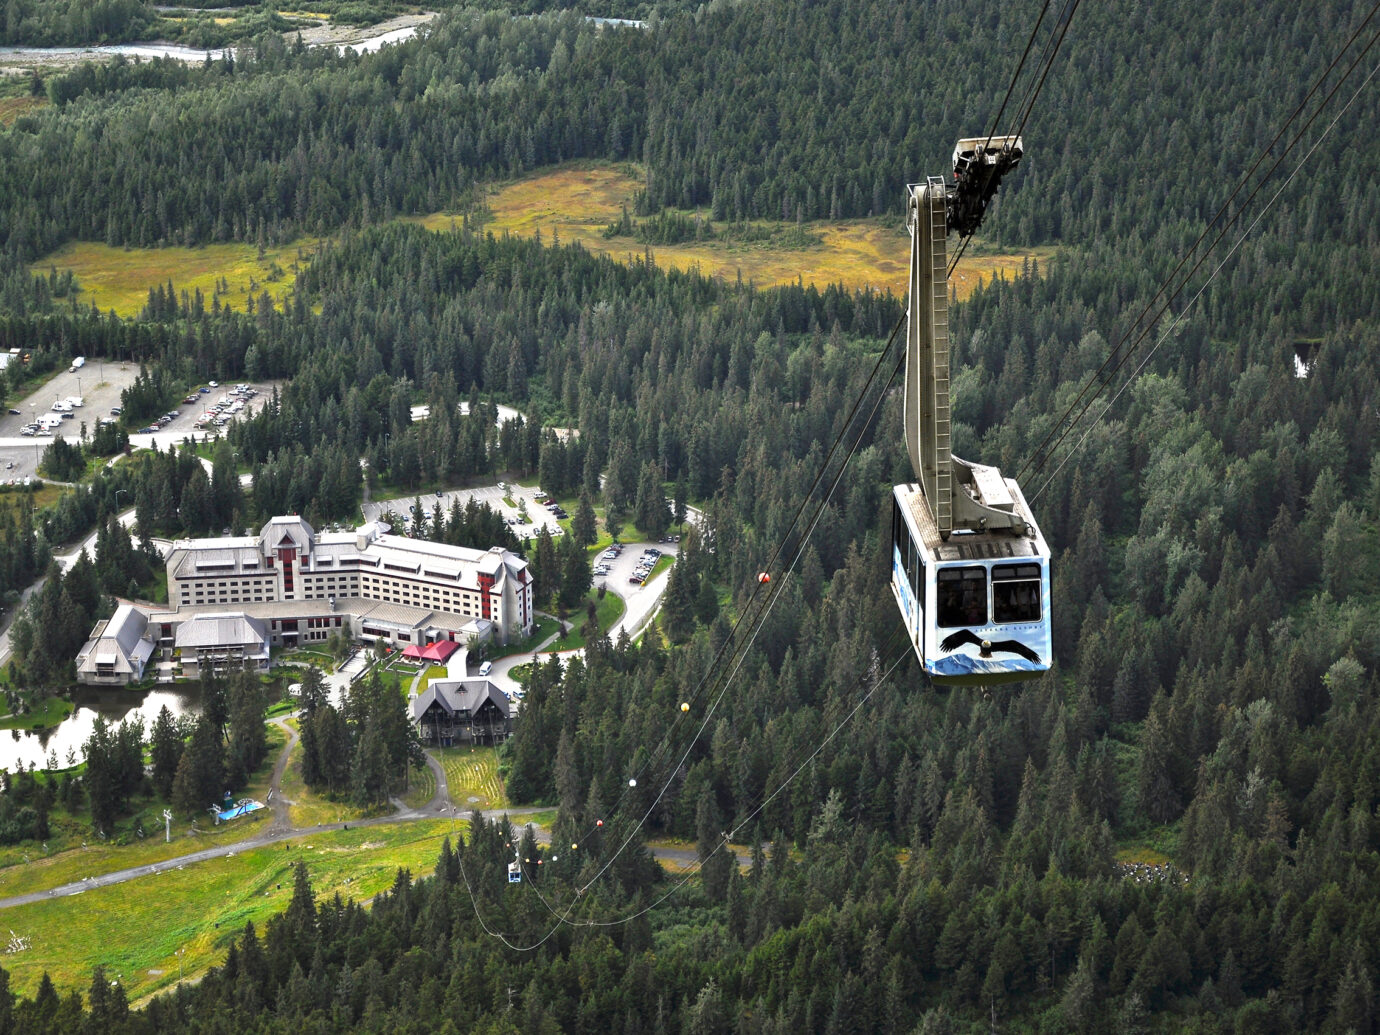 Tram on a mountain in Anchorage Alaska